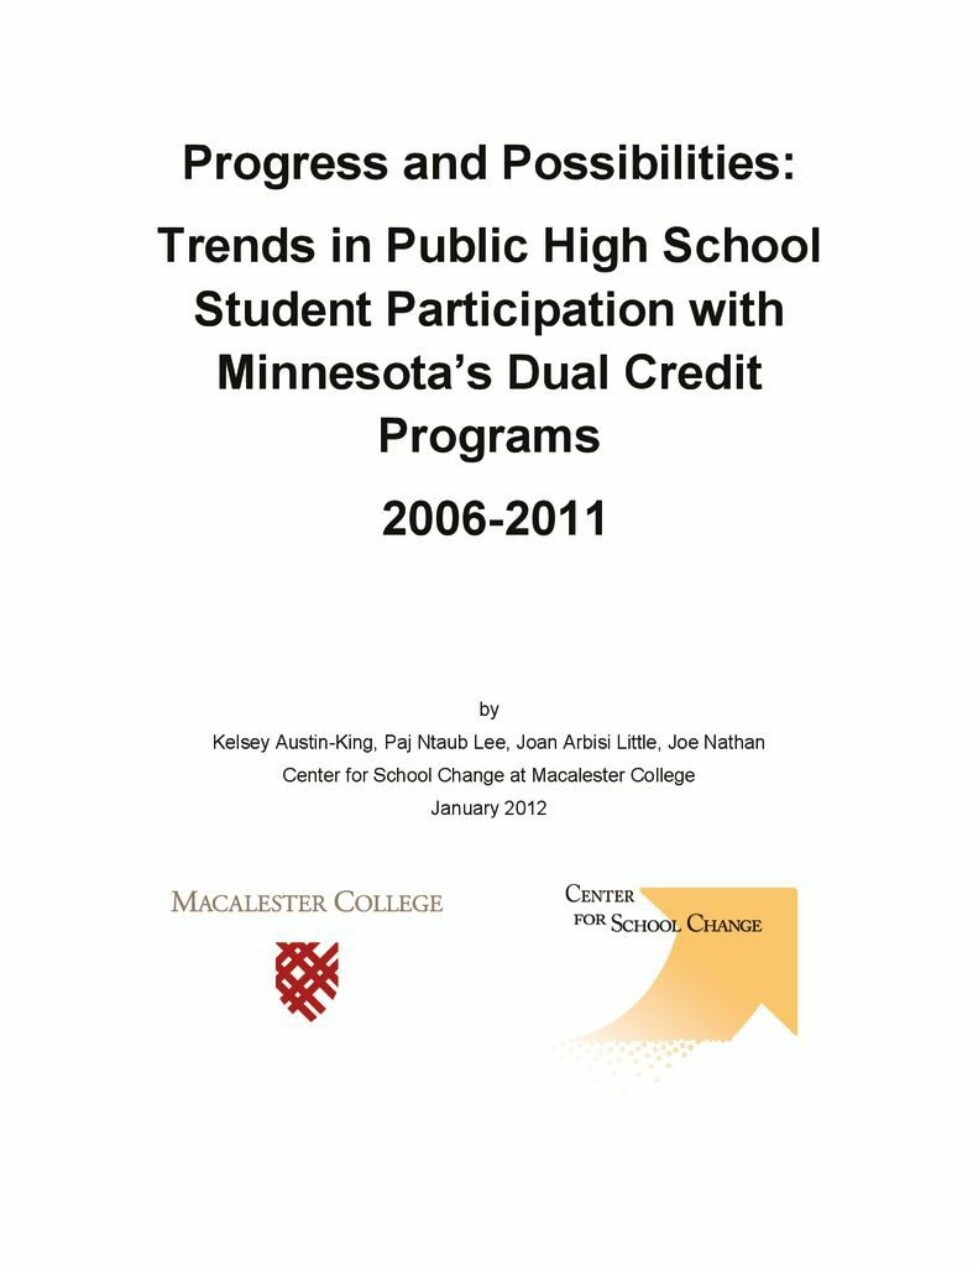 thumbnail of Progress and Possiblilites:Trends in Public High School Student Participation with Minnesota's Dual Credit Programs 2006-2011